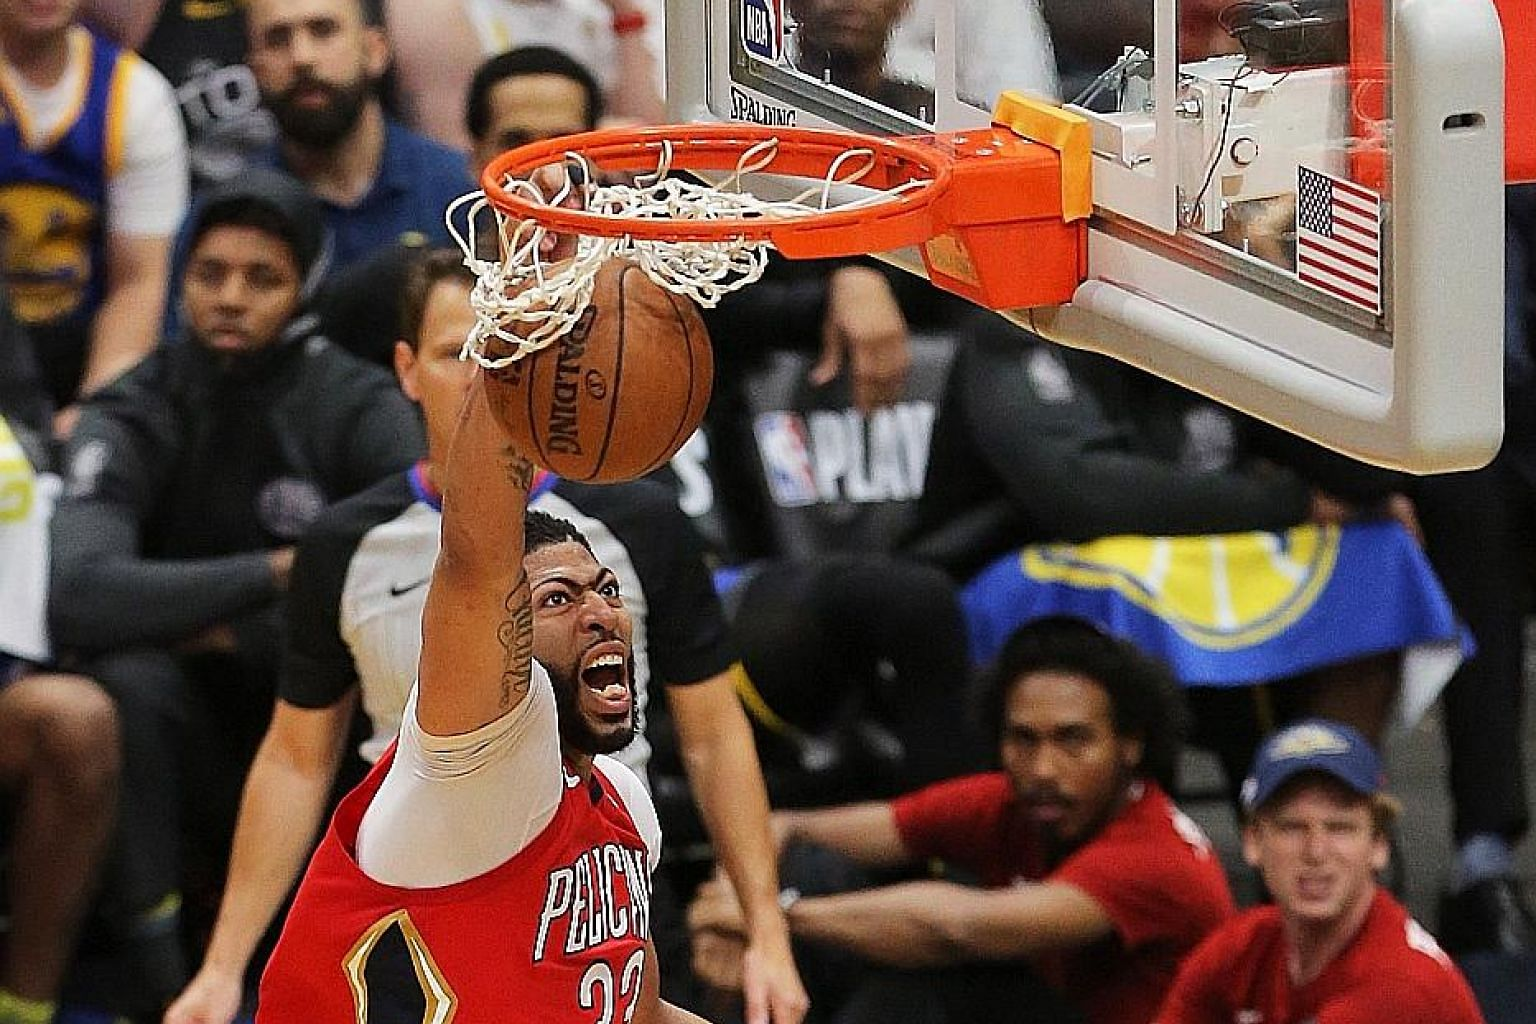 Pelicans forward Anthony Davis dunks the ball in Game 3 of the NBA Western Conference semi-finals at the Smoothie King Centre in New Orleans, Louisiana. The Pelicans won 119-100 but still trail 1-2 in the best-of-seven series.